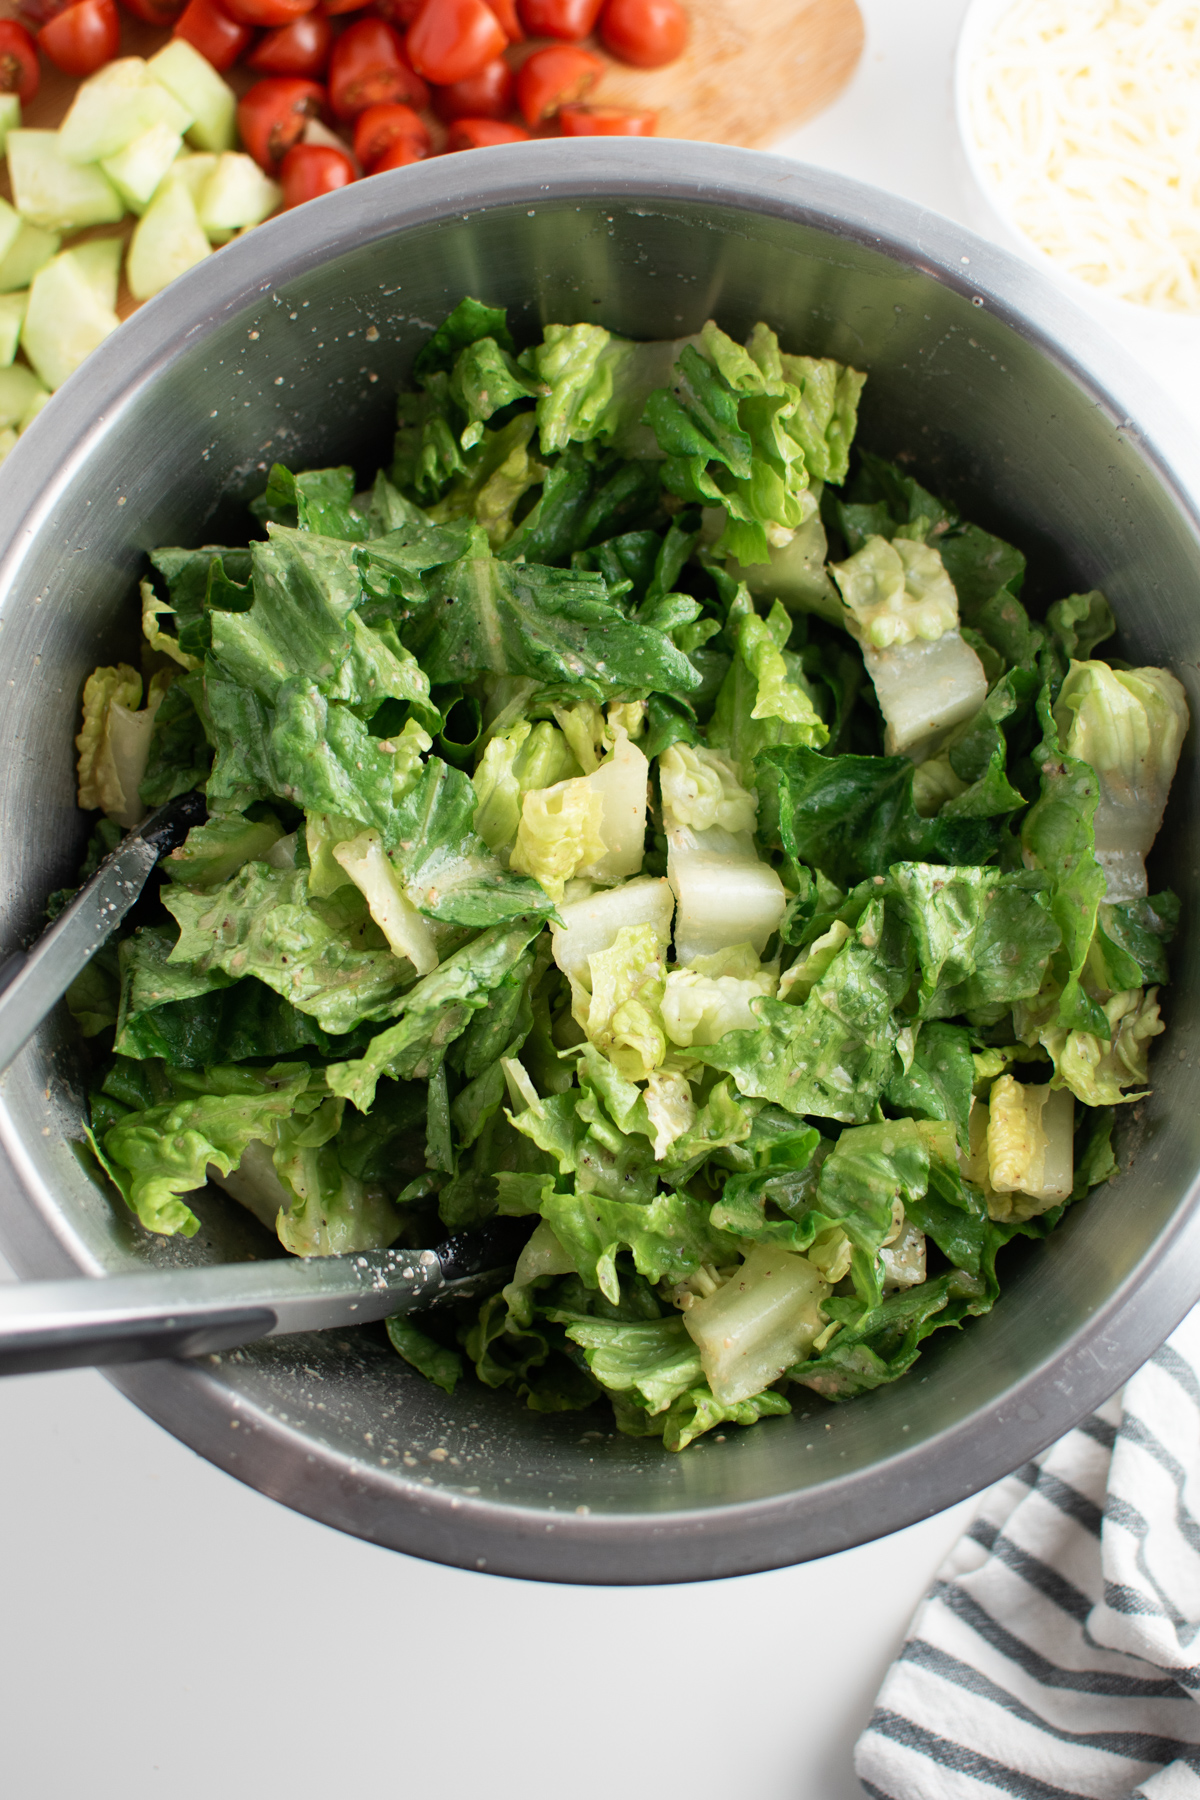 Lettuce with Caesar dressing in large metal mixing bowl with blue and white kitchen towel.